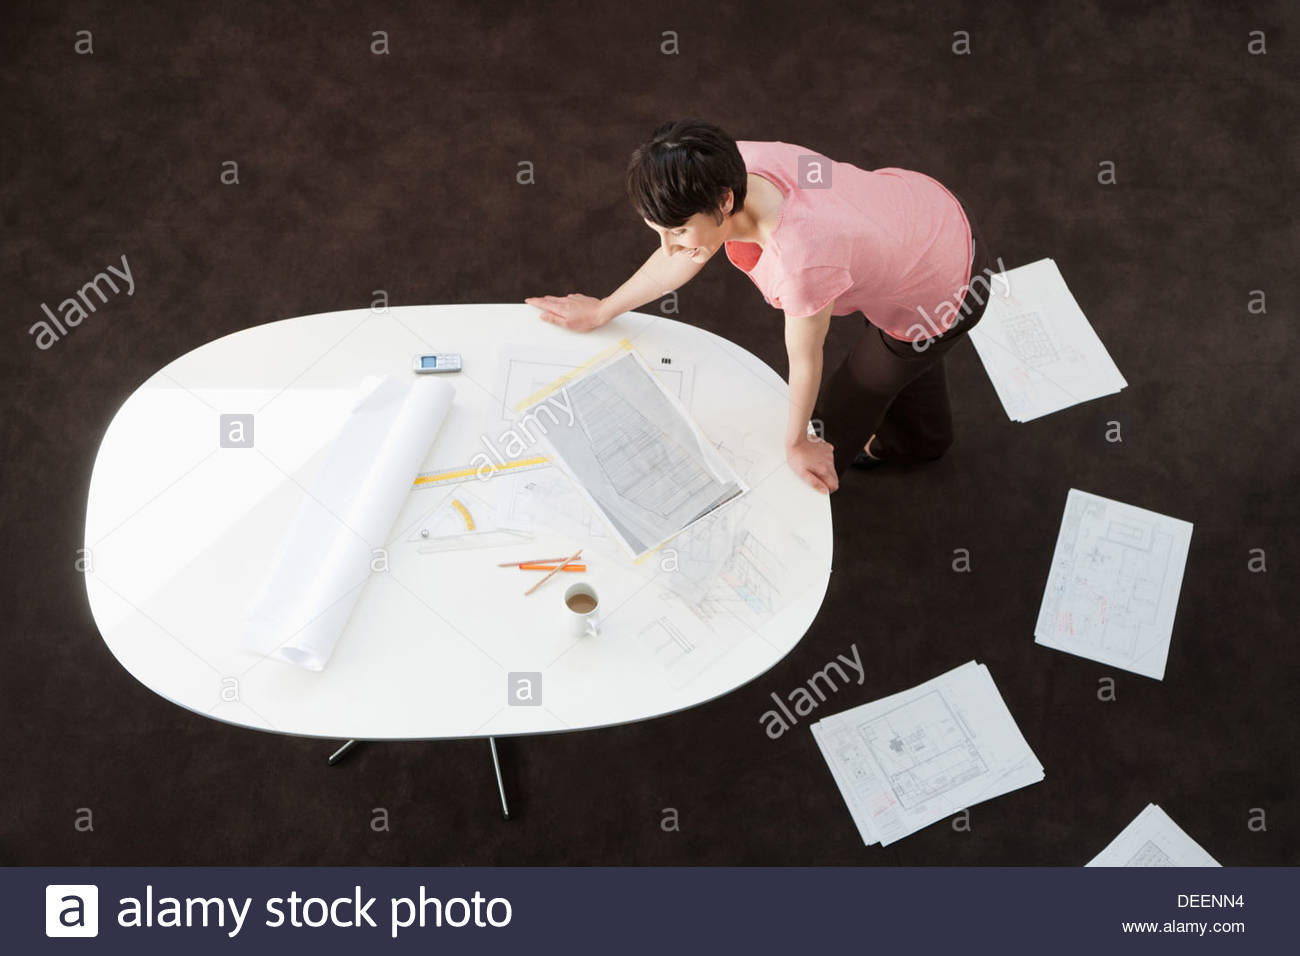 Businesswoman looking at drafts on a table - Stock Image